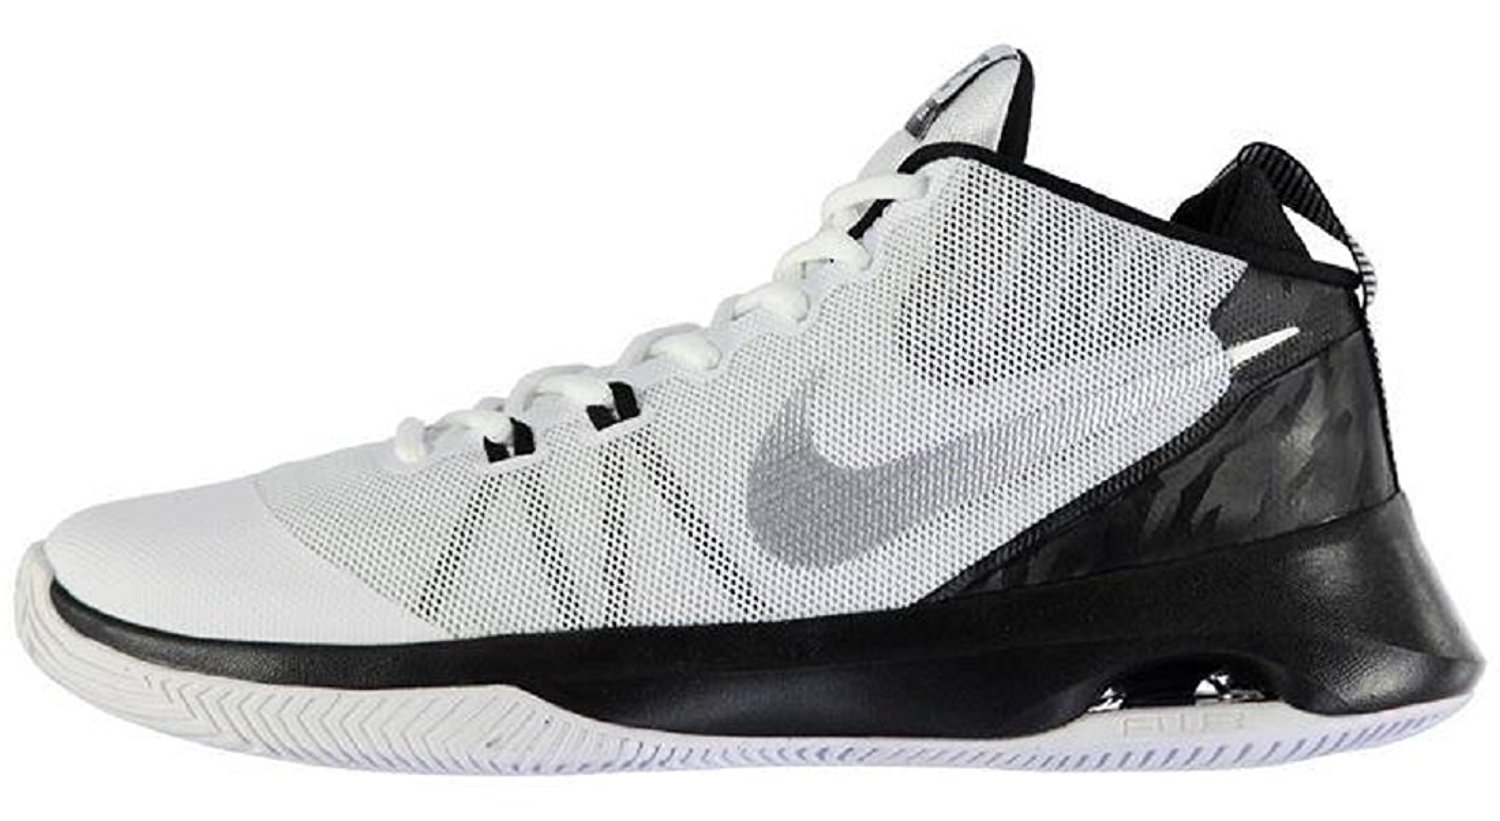 18c05bf8d62 Mens Nike Performance Air Versitile Basketball Trainers Shoes White Black